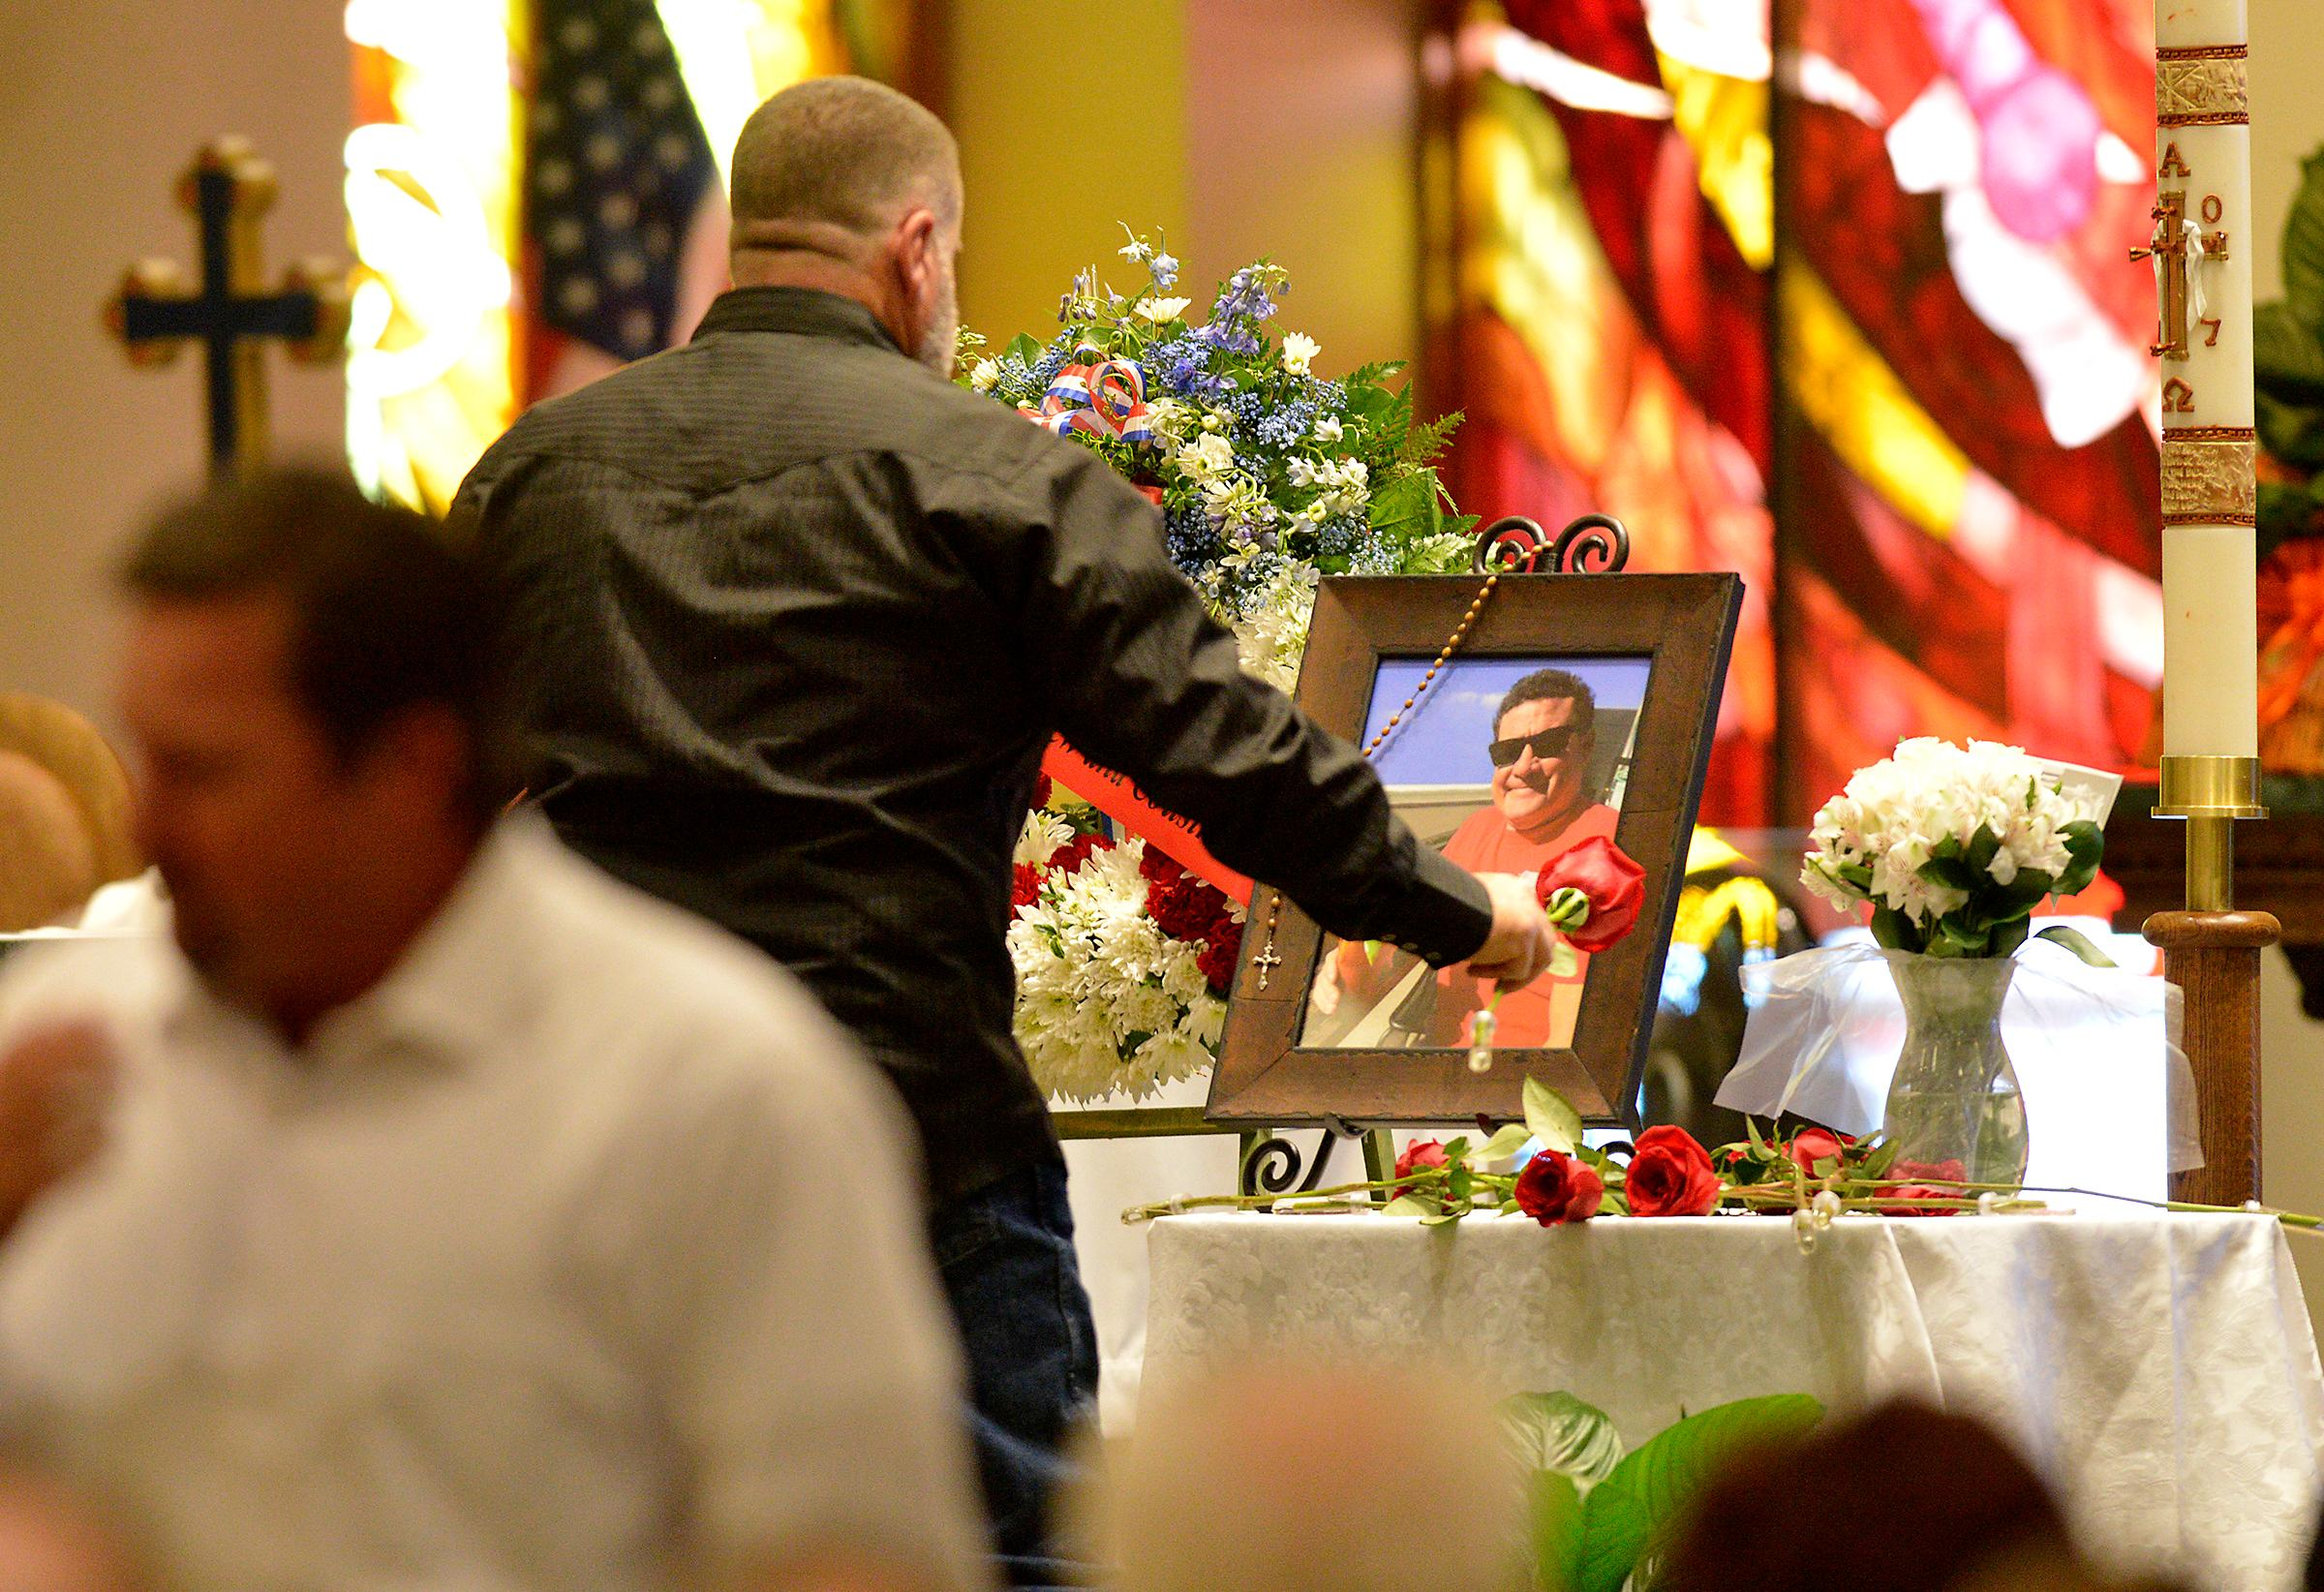 A pallbearer lays a rose next to a photo of Jack Beaton during his memorial service at St. Elizabeth Ann Seton Catholic Church in Bakersfield, Calif., on Saturday, Oct. 7, 2017. Beaton was a victim of the Oct. 1 mass shooting in Las Vegas. (AP Photo/Silvia Flores)